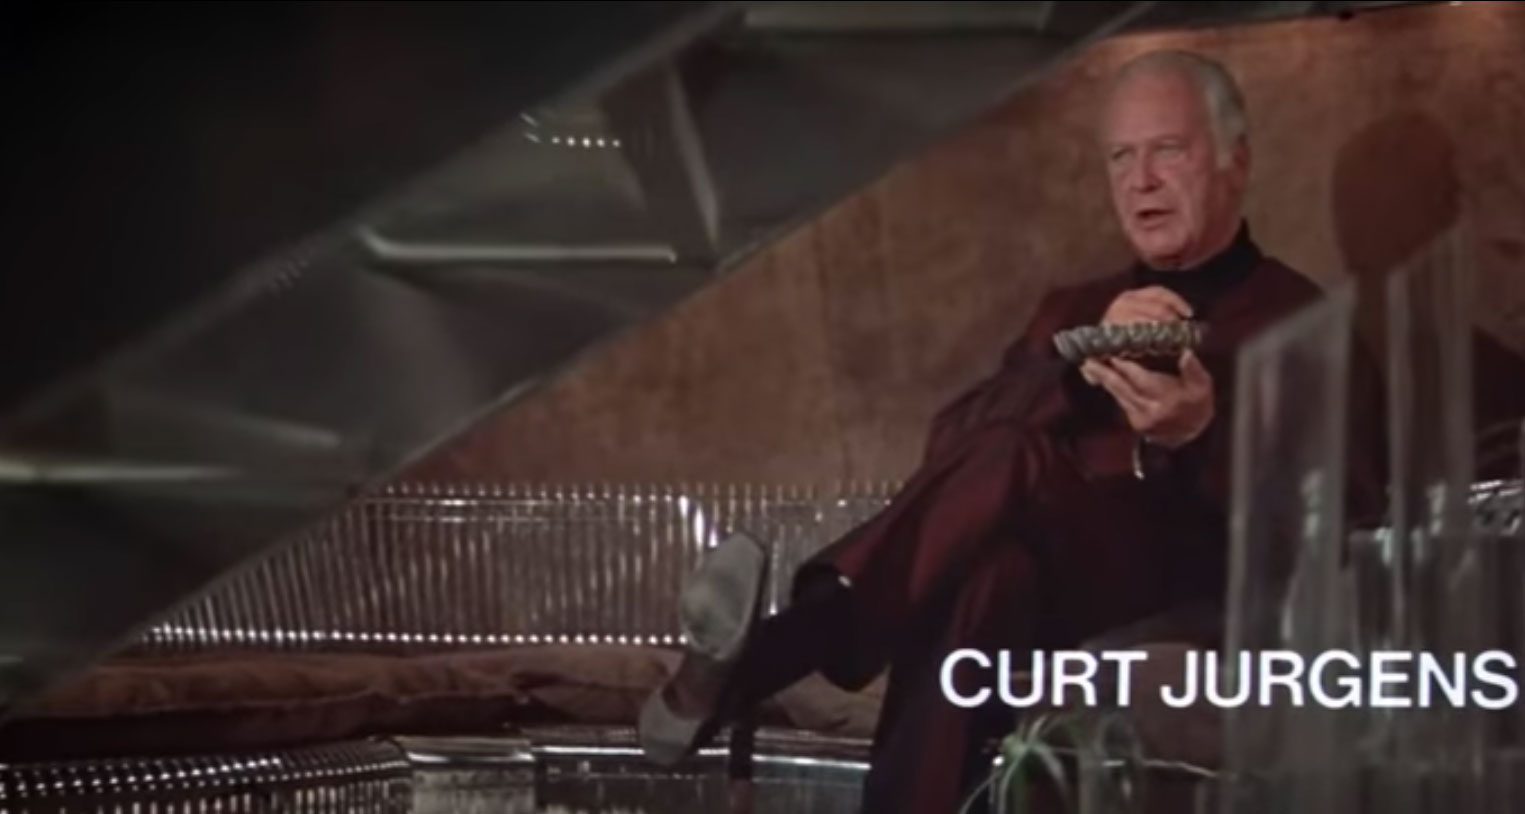 Bond villain Karl Stromberg (Curt Jurgens) reclines on a Pantonova sofa in the trailer for The Spy Who Loved Me